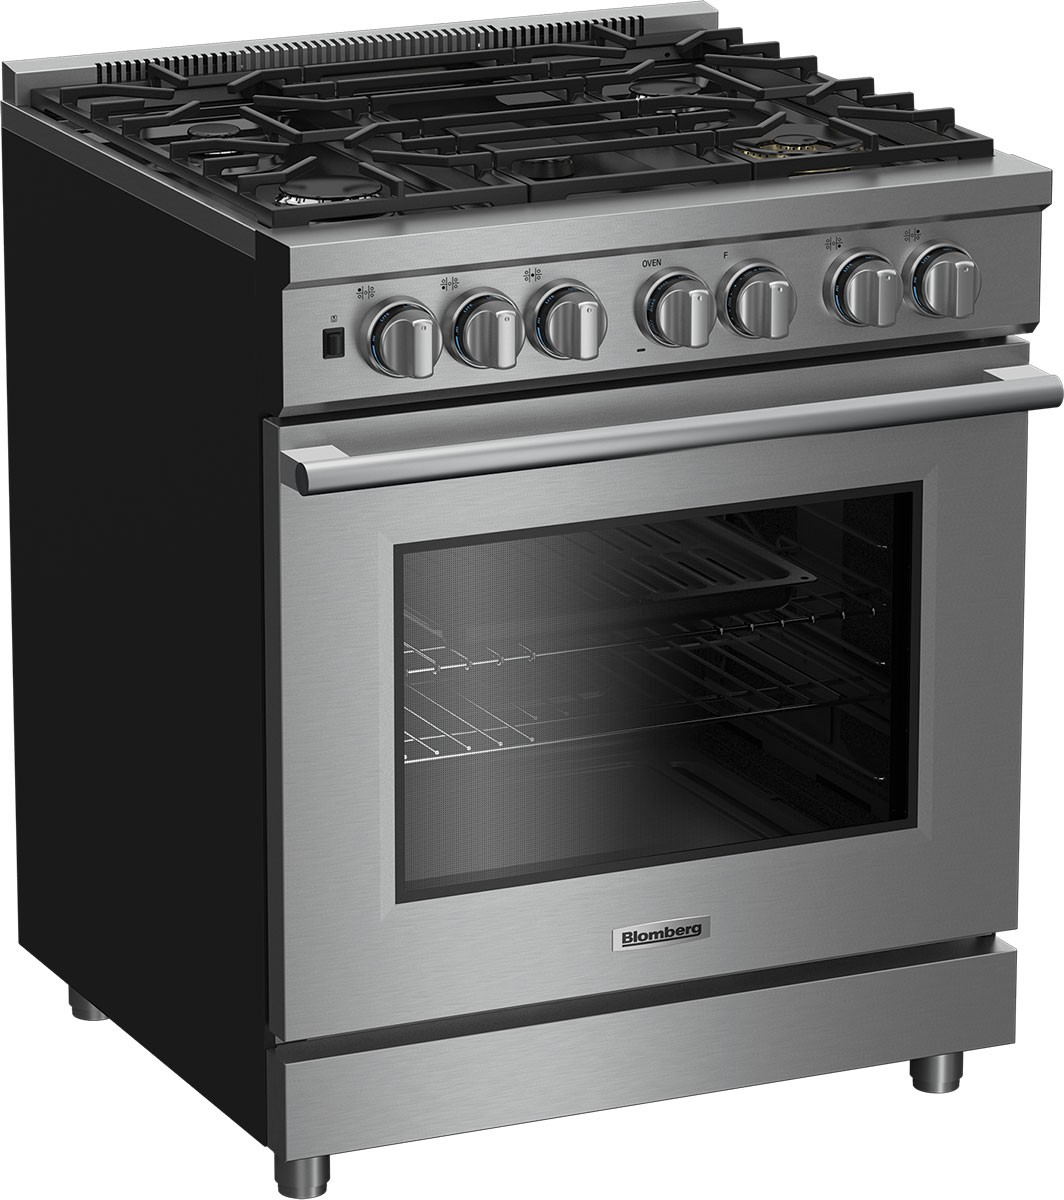 Model: BGRP34520SS | Blomberg 30 Inch Pro-Style Gas Range